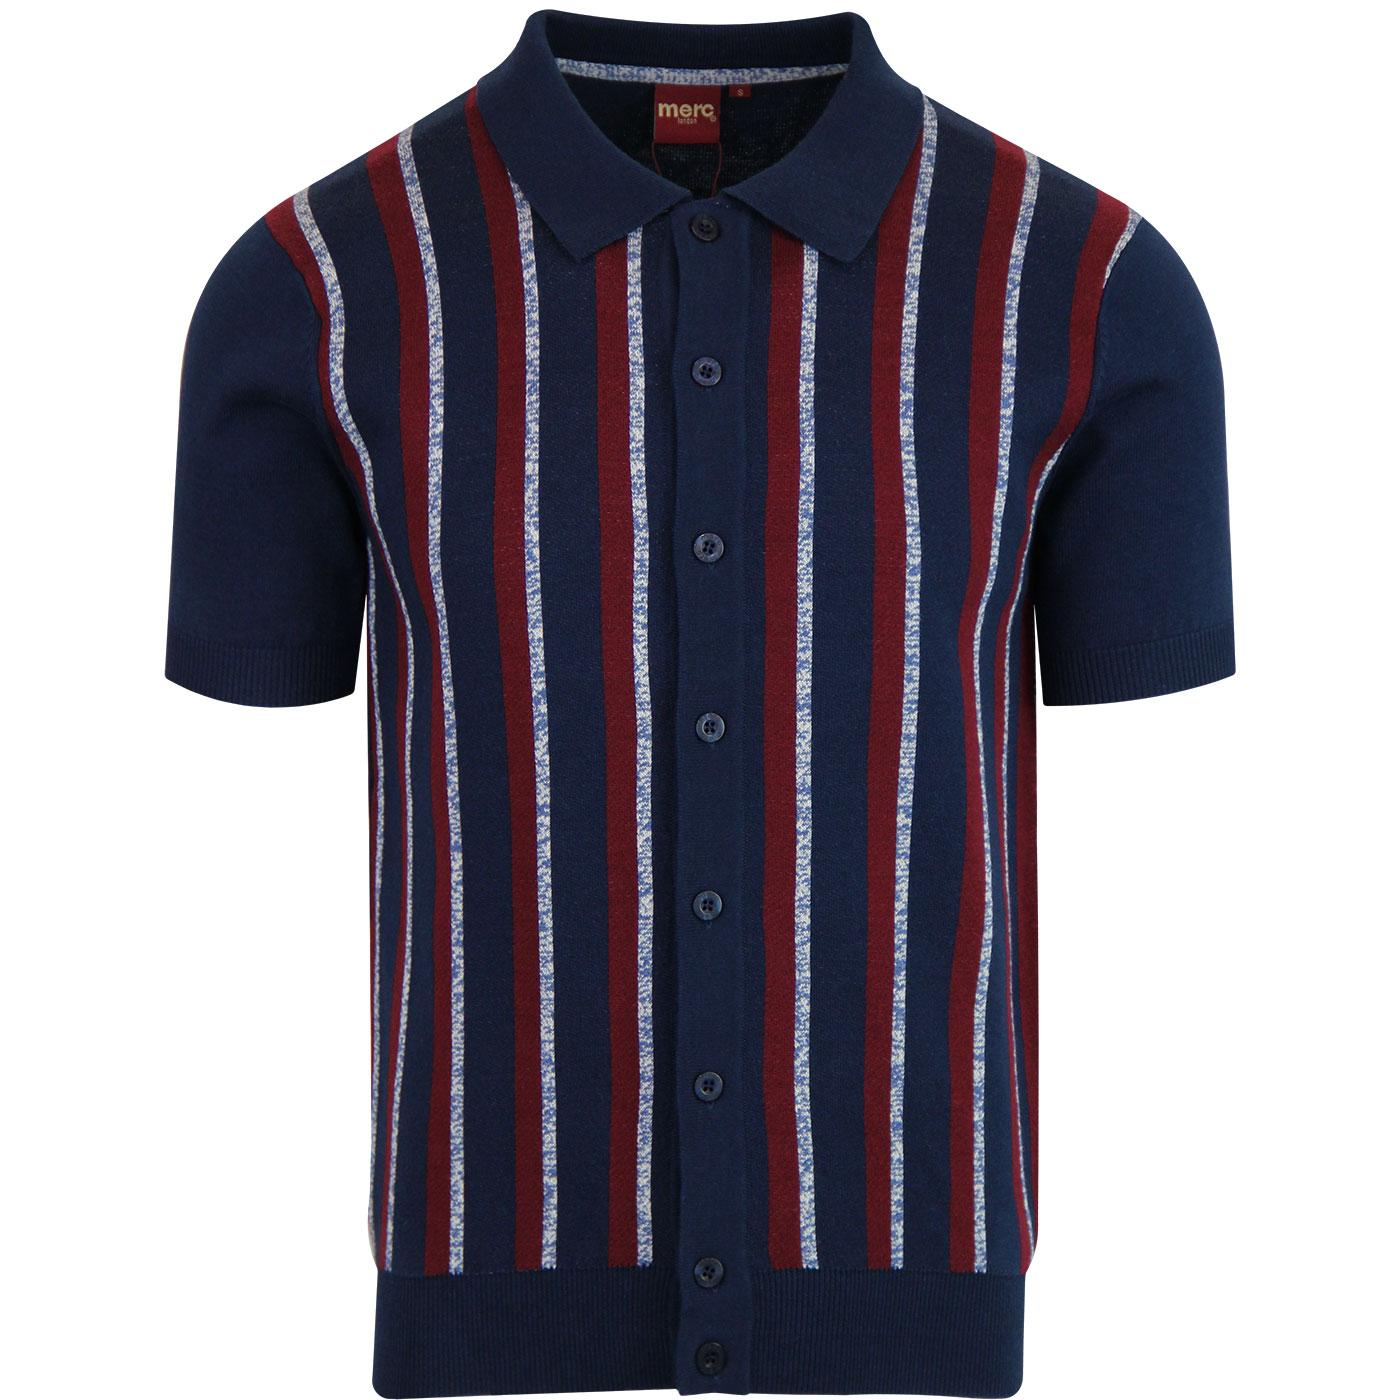 Wilmot MERC Stripe Knitted Retro Mod Polo Top NAVY